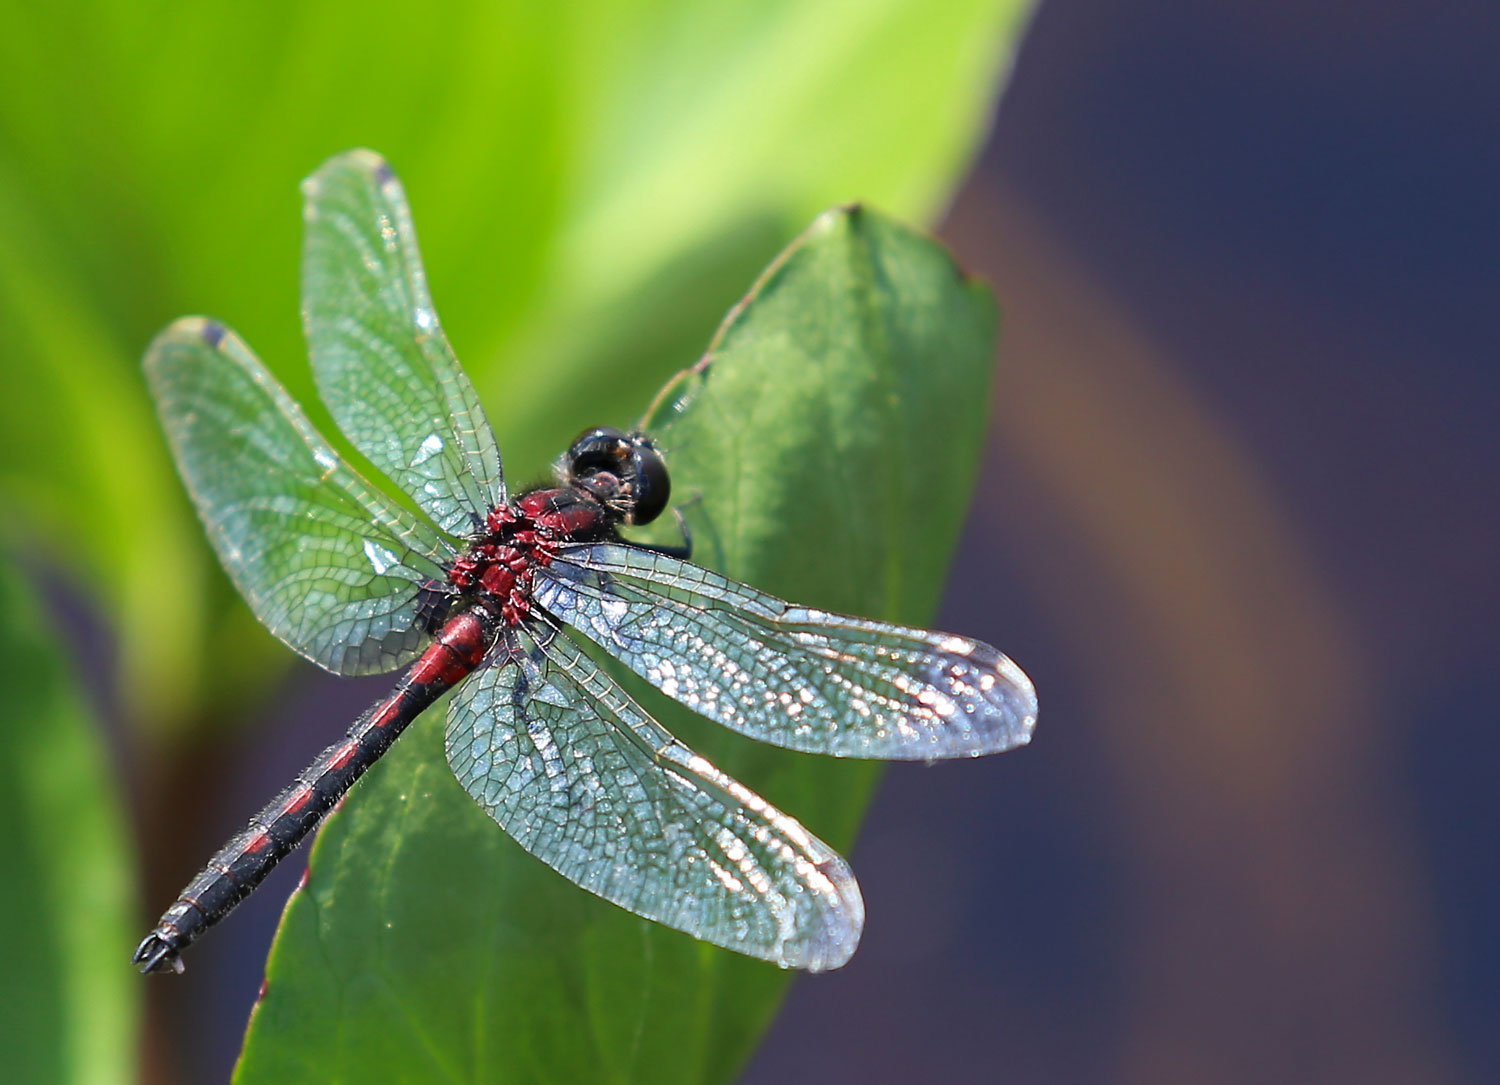 Hudsonian whiteface dragonfly on a buckbean leaf.